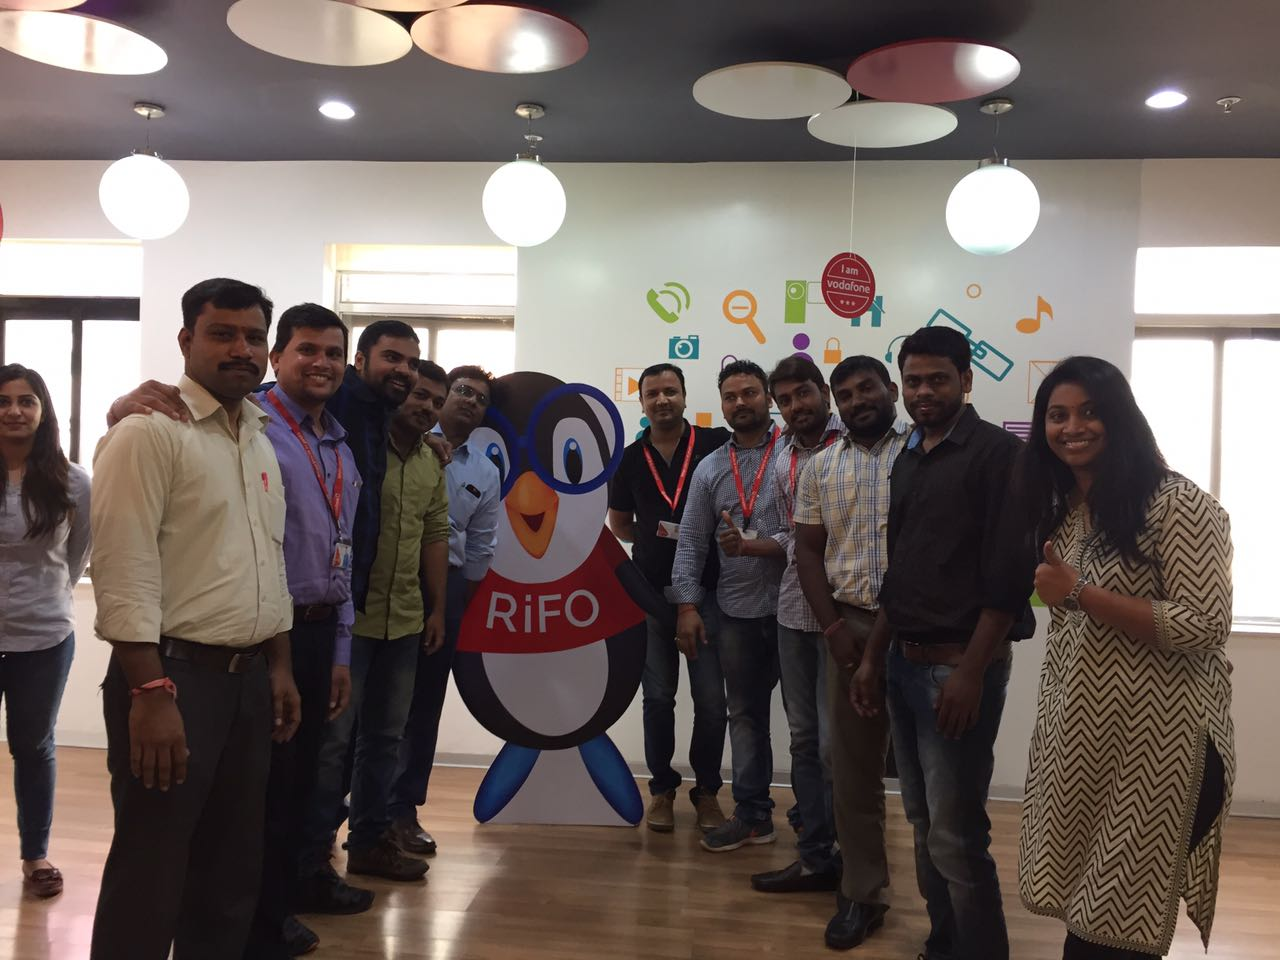 Vodafone employees pose with RiFO